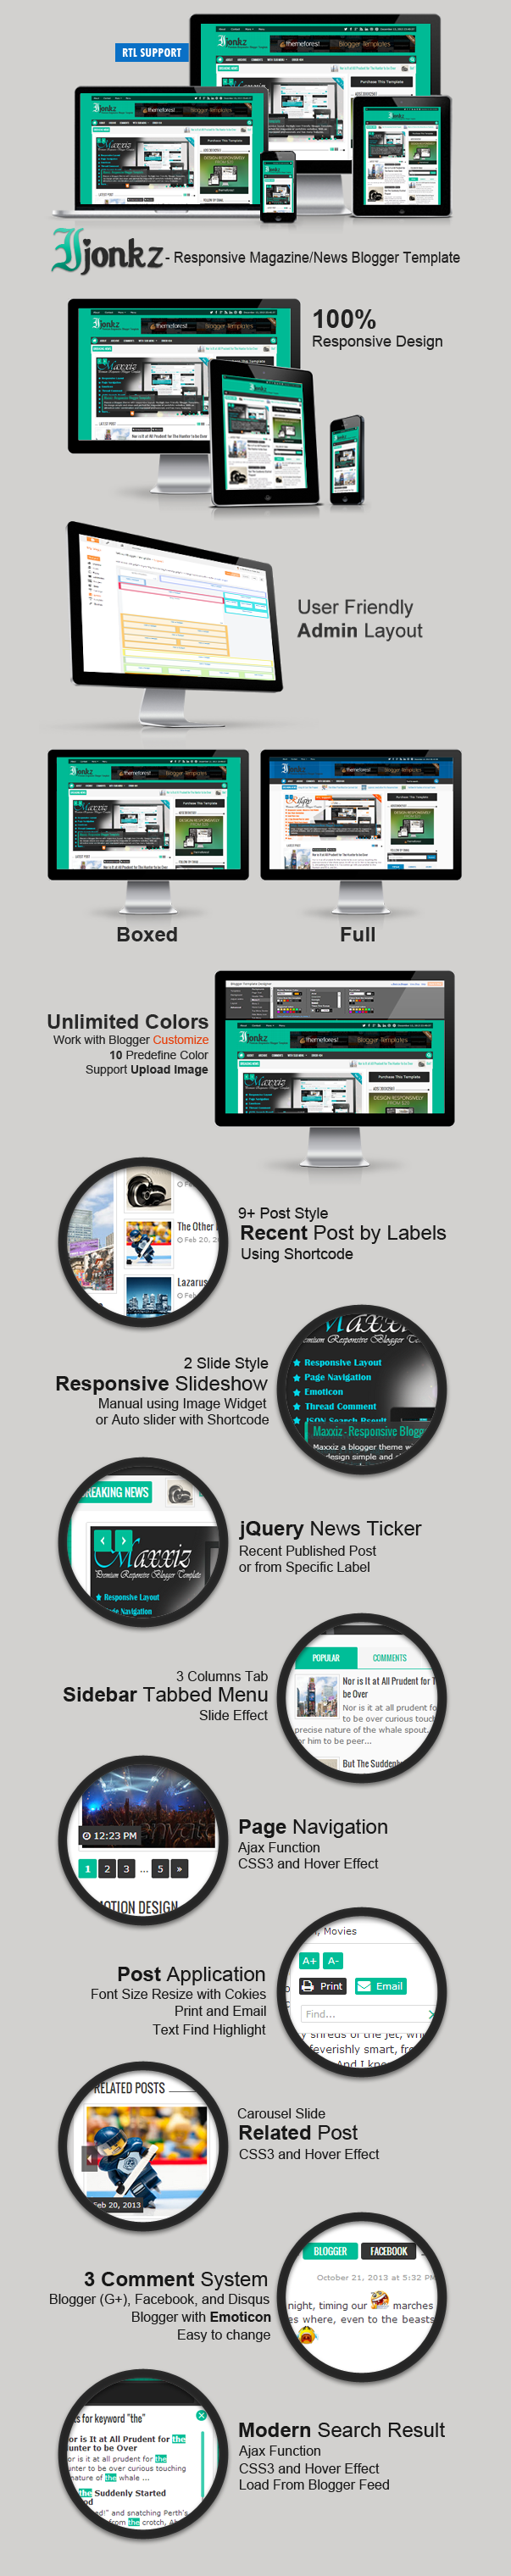 Ijonkz Responsive Magazine/News Blogger Template Features